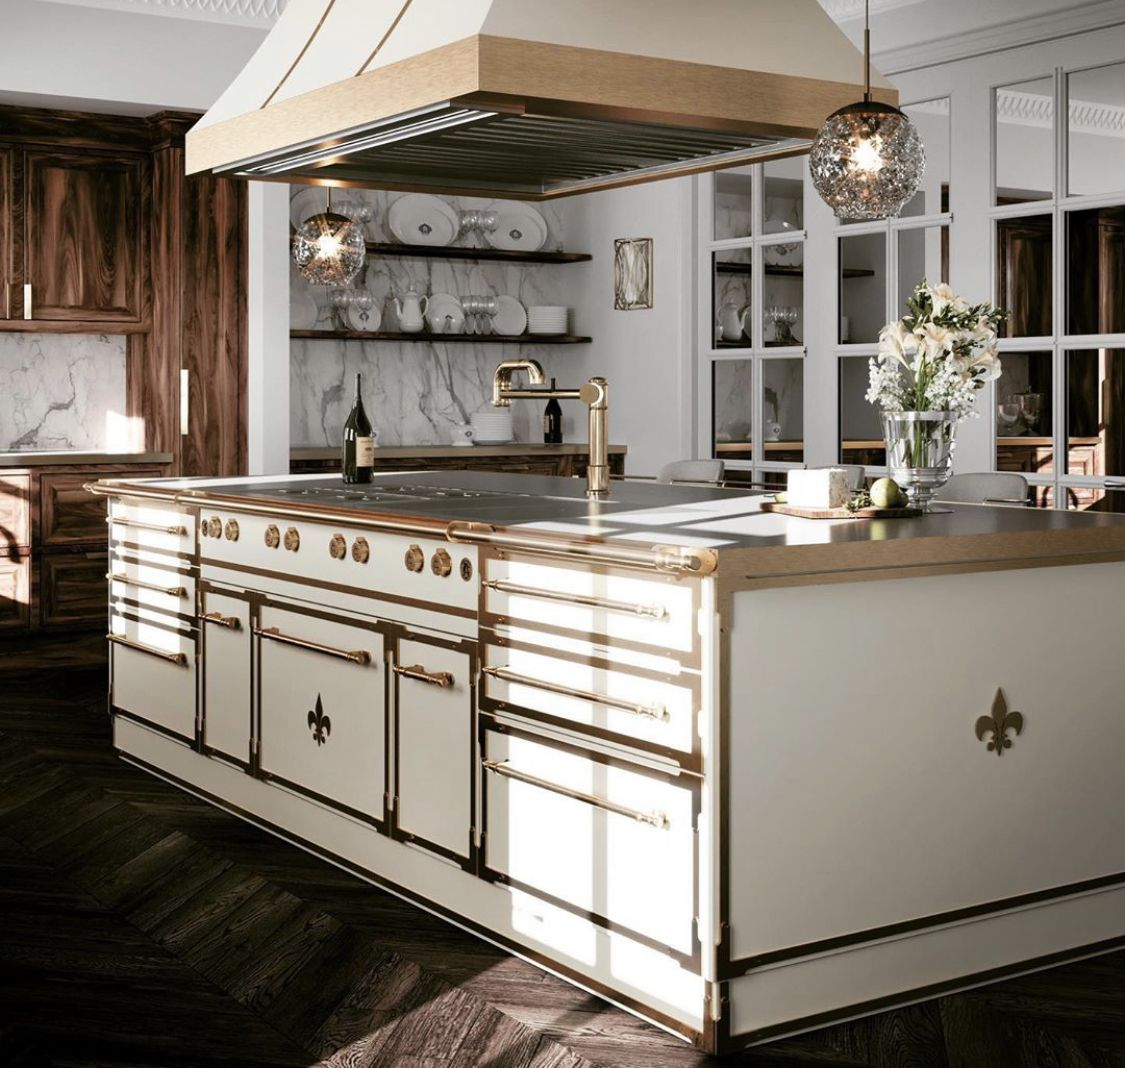 Pin by Kim Fellows on Kitchens in 2020 Cooking range